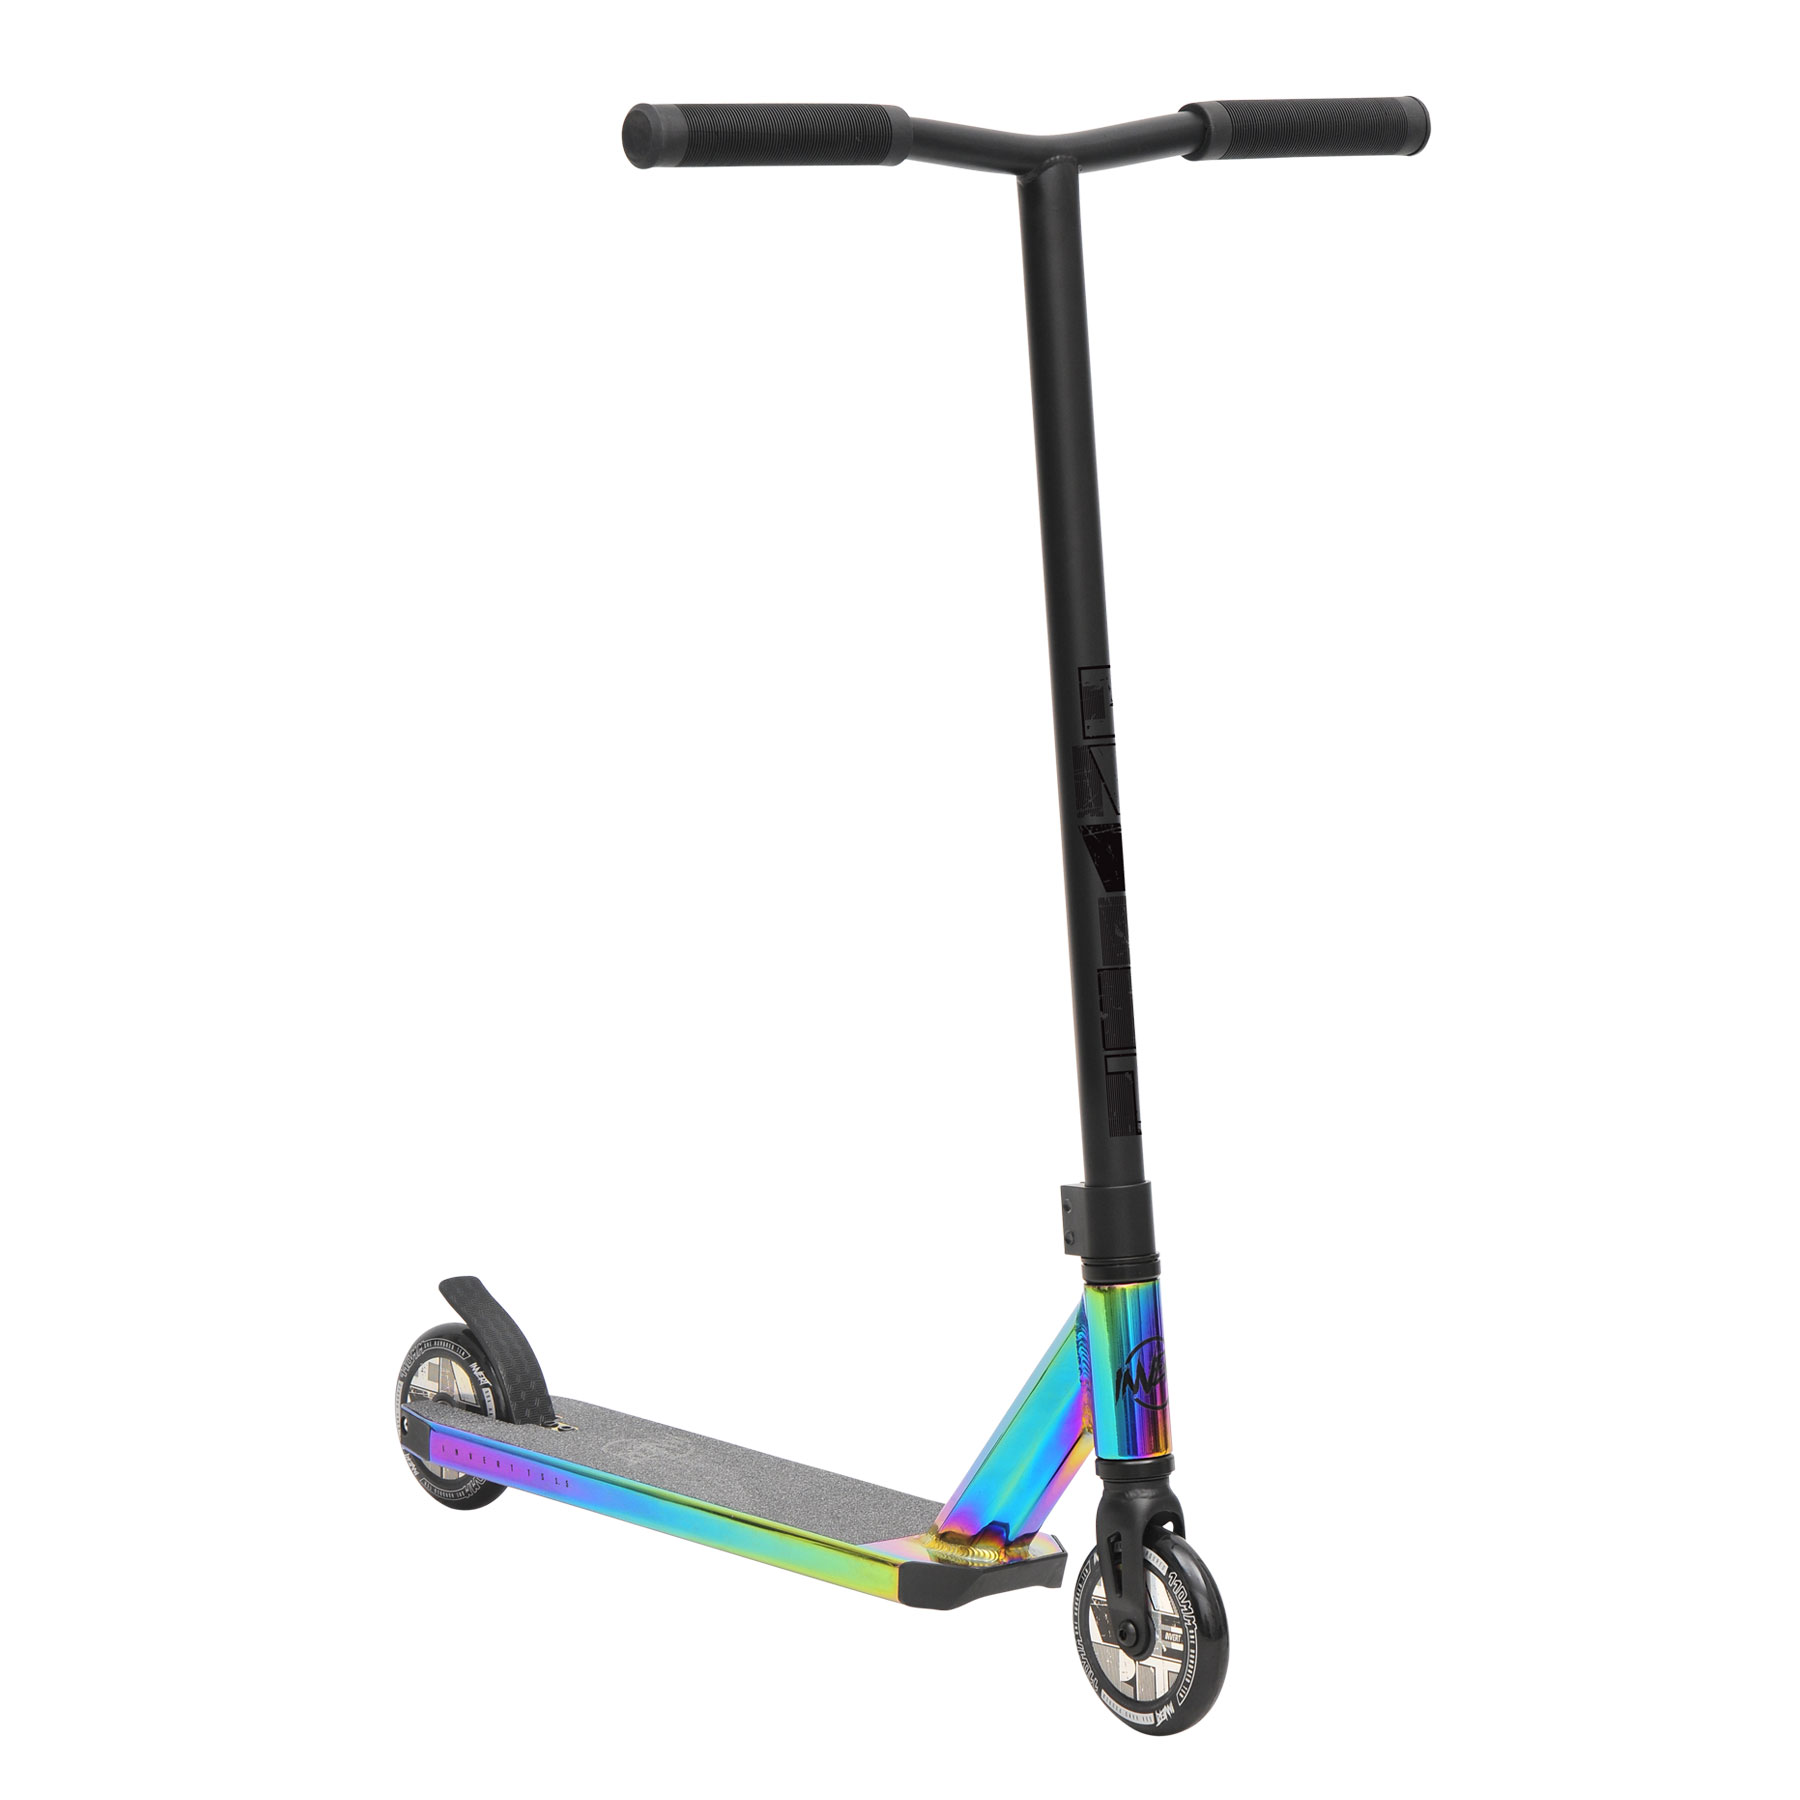 Invert Stunt Scooter V2-TS1.5 Neo chrome